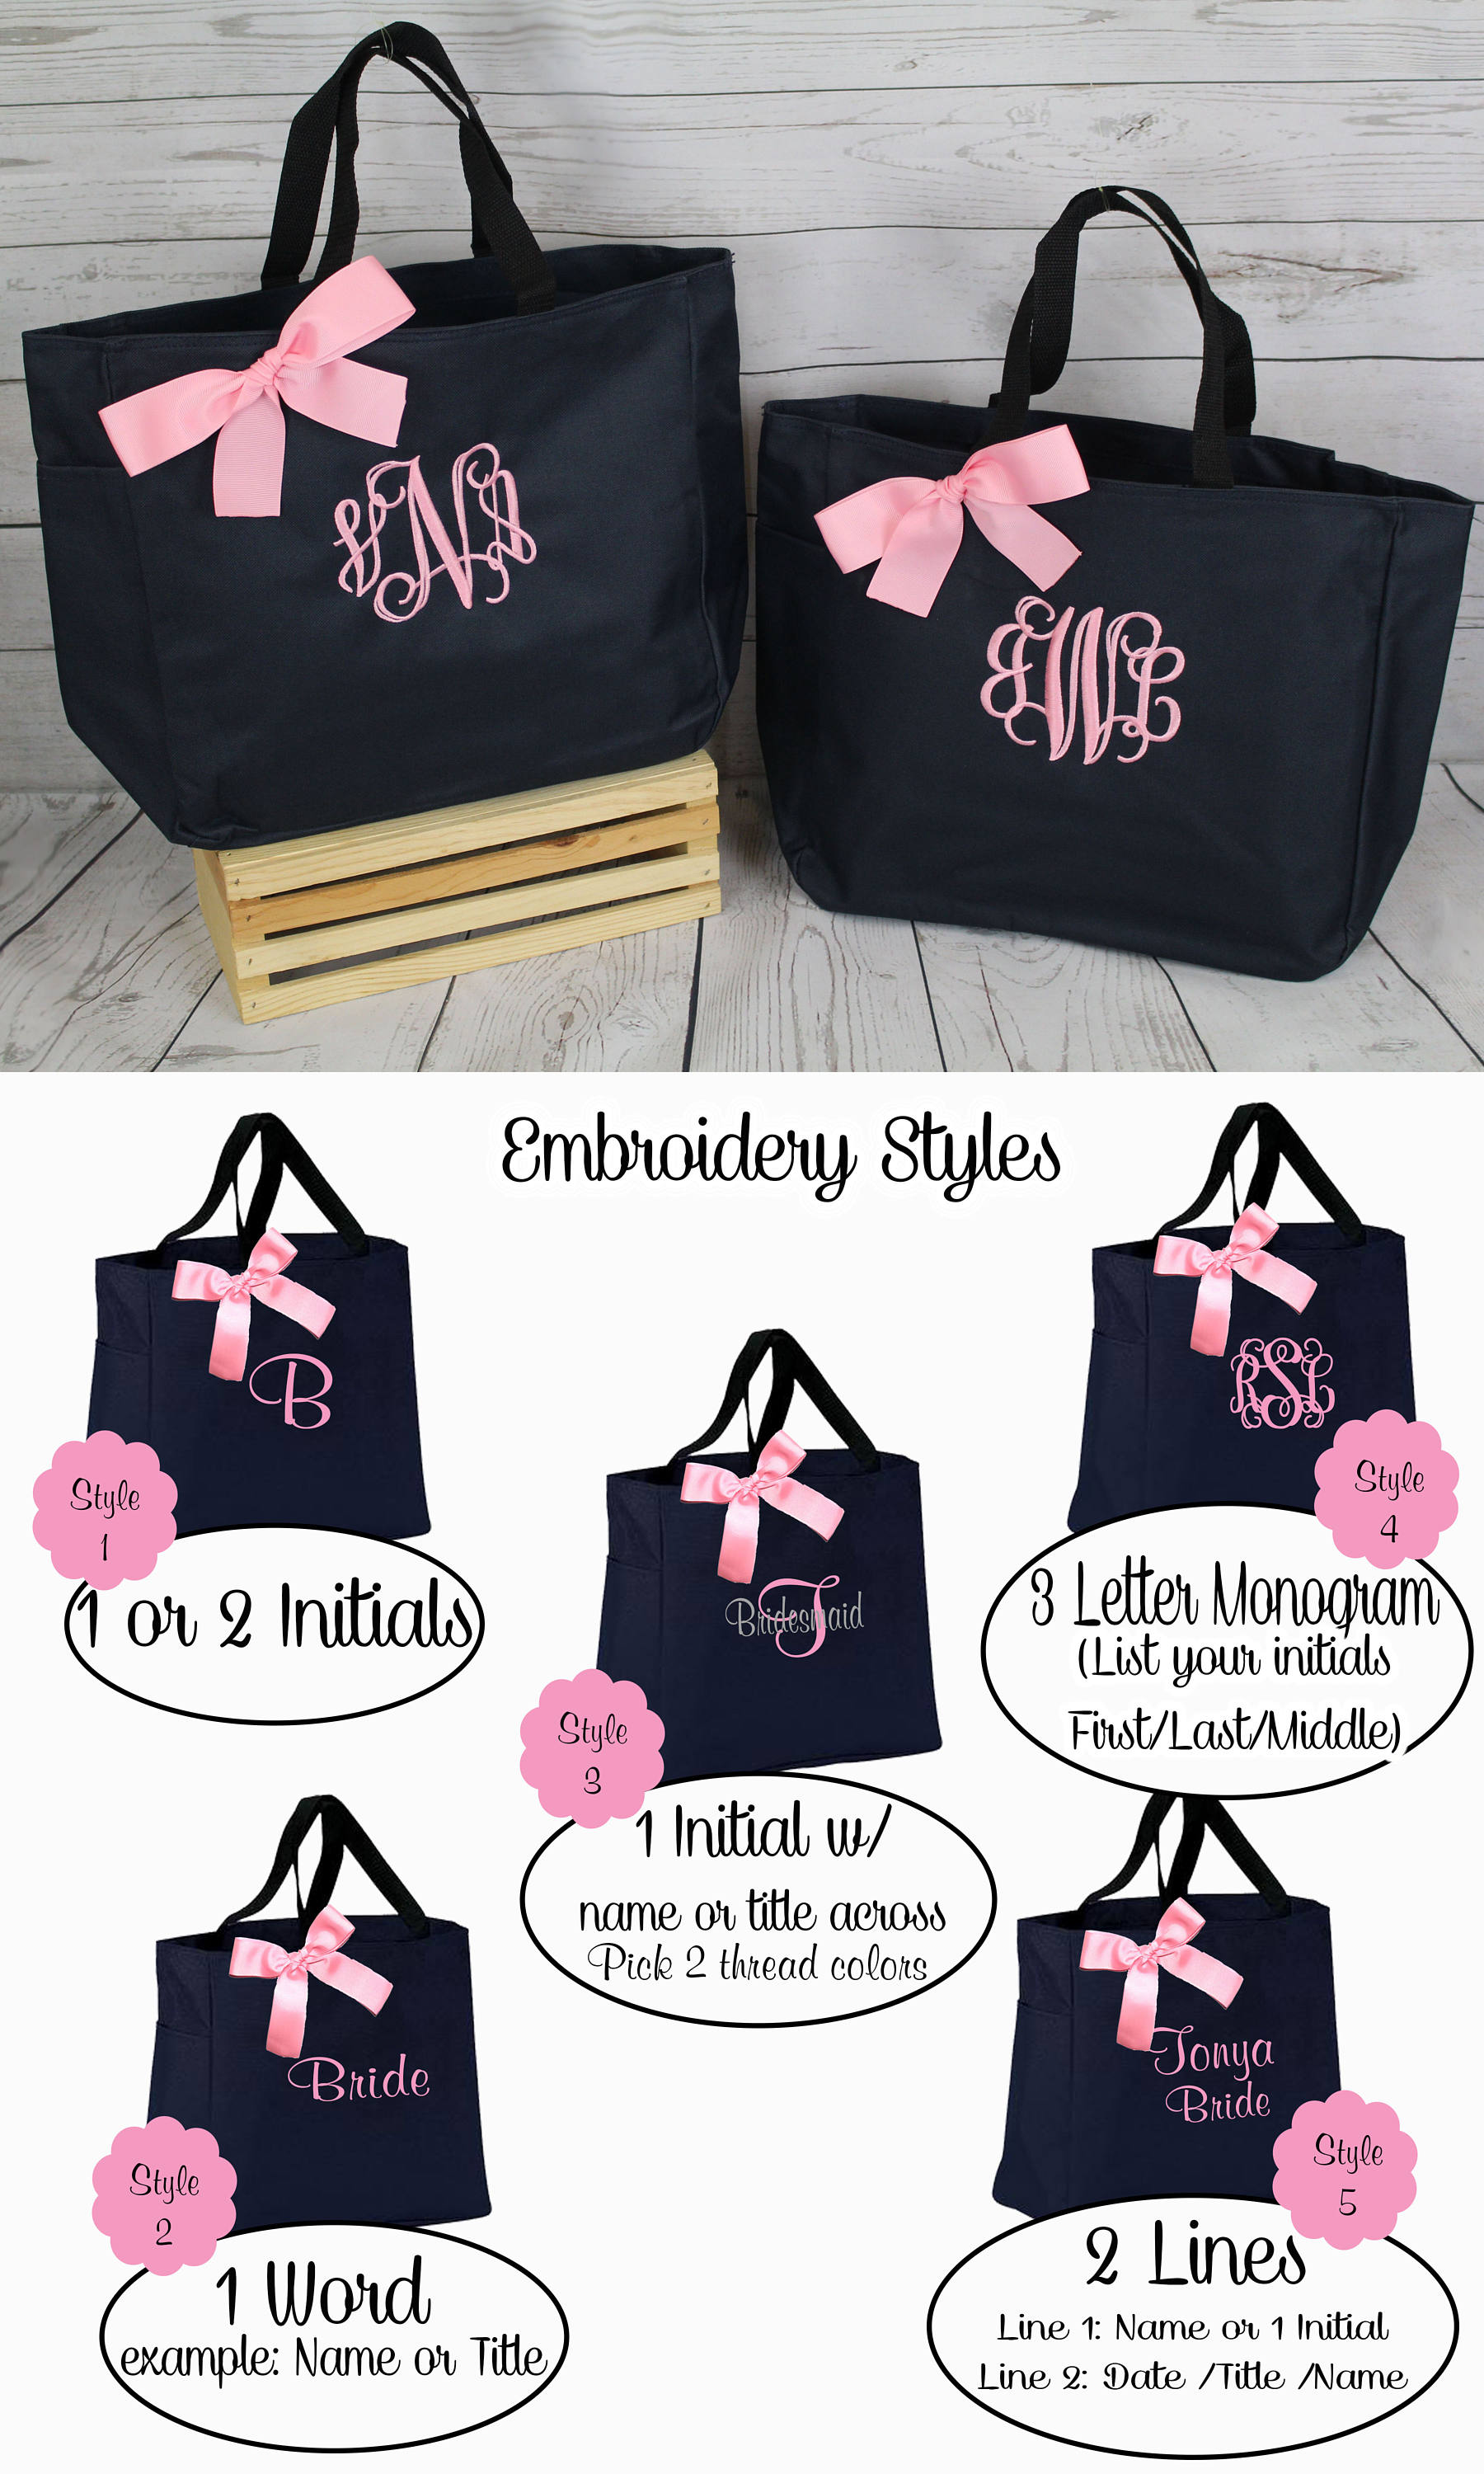 7 personalized wedding tote bridesmaid gift tote bags embroidered